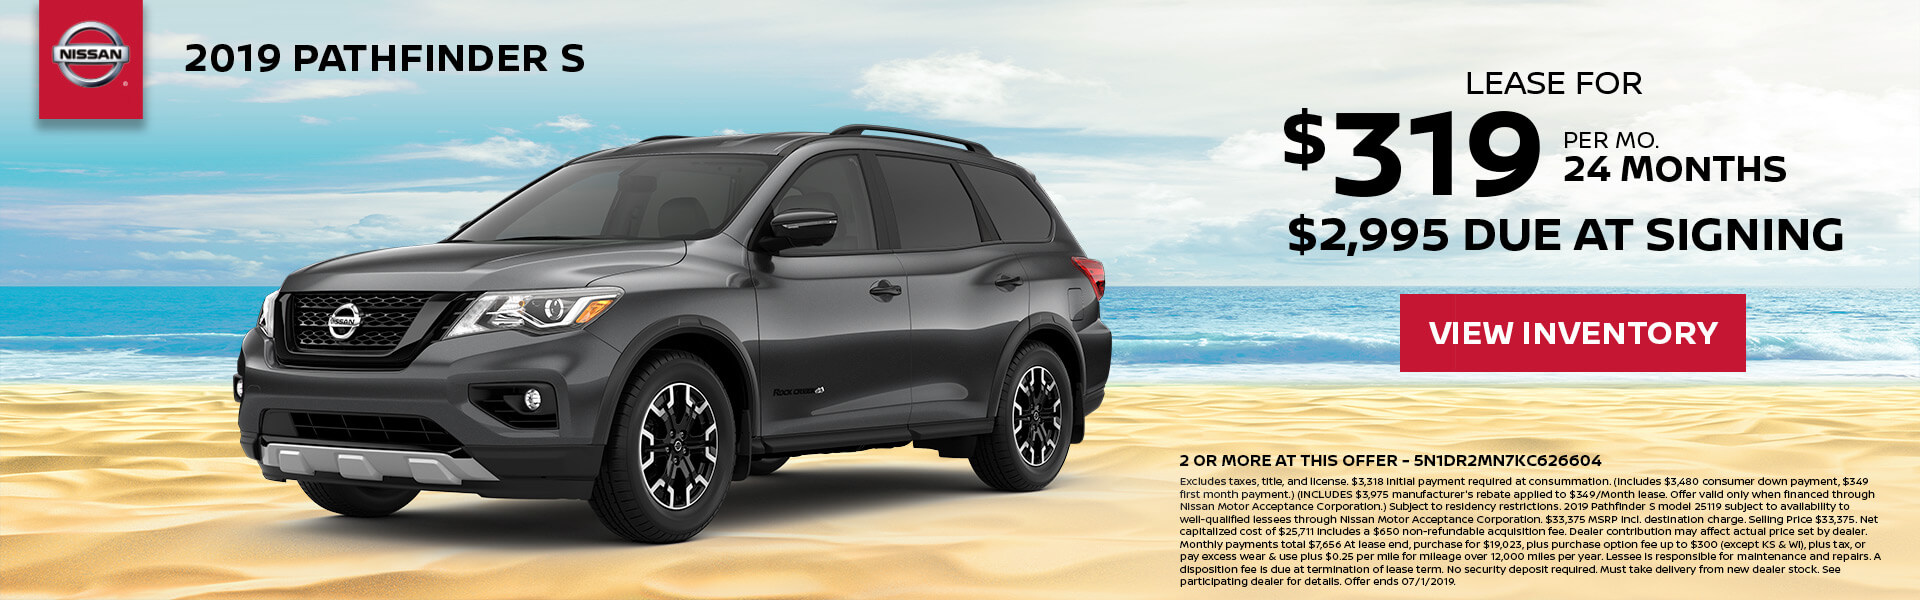 2019 Nissan Pathfinder Lease for $319